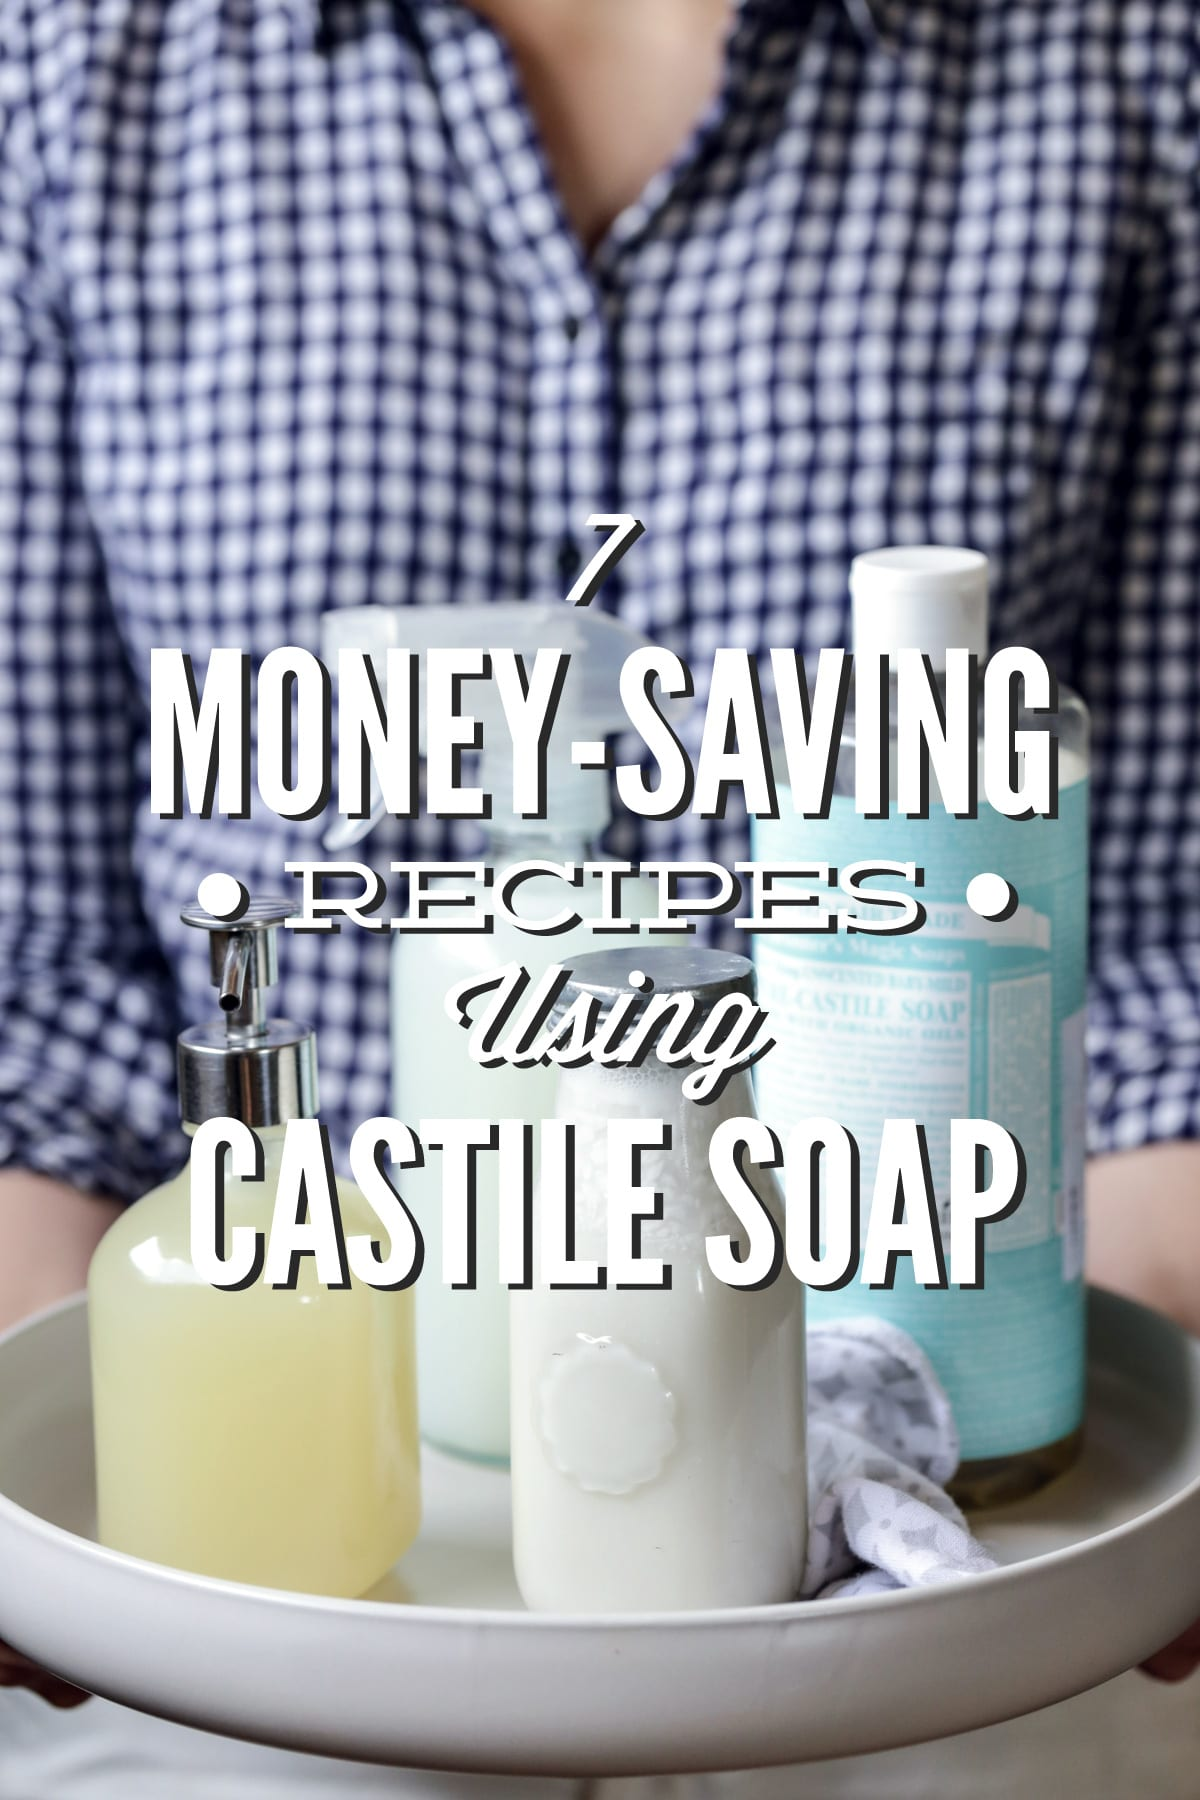 You Can Do It: 7 Money-Saving Recipes Using Castile Soap